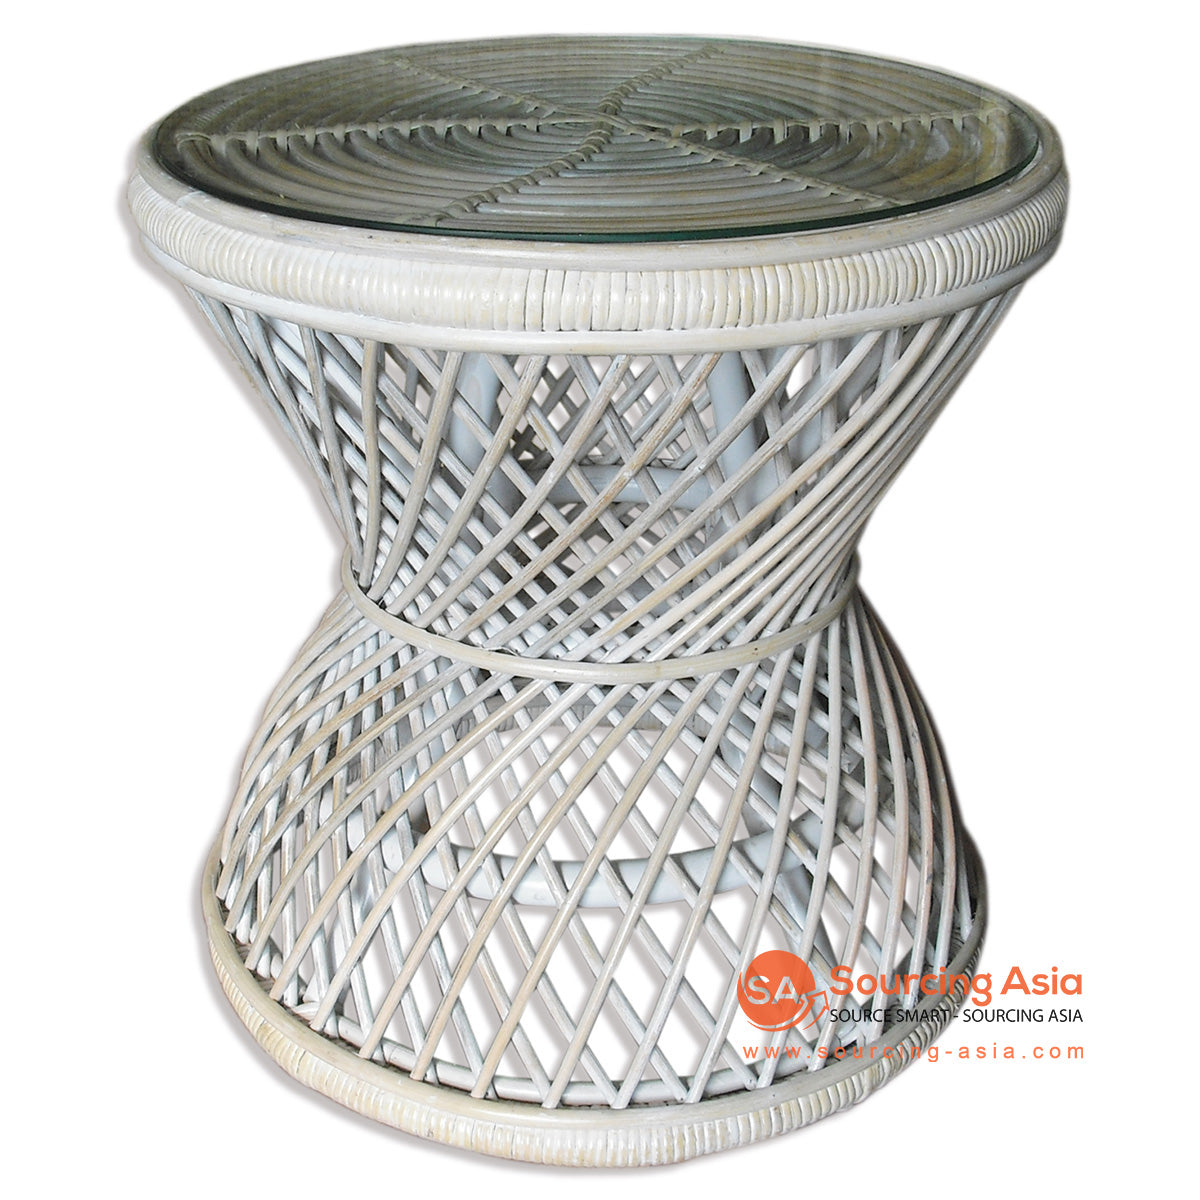 MUR005-CT RATTAN SIDE TABLE